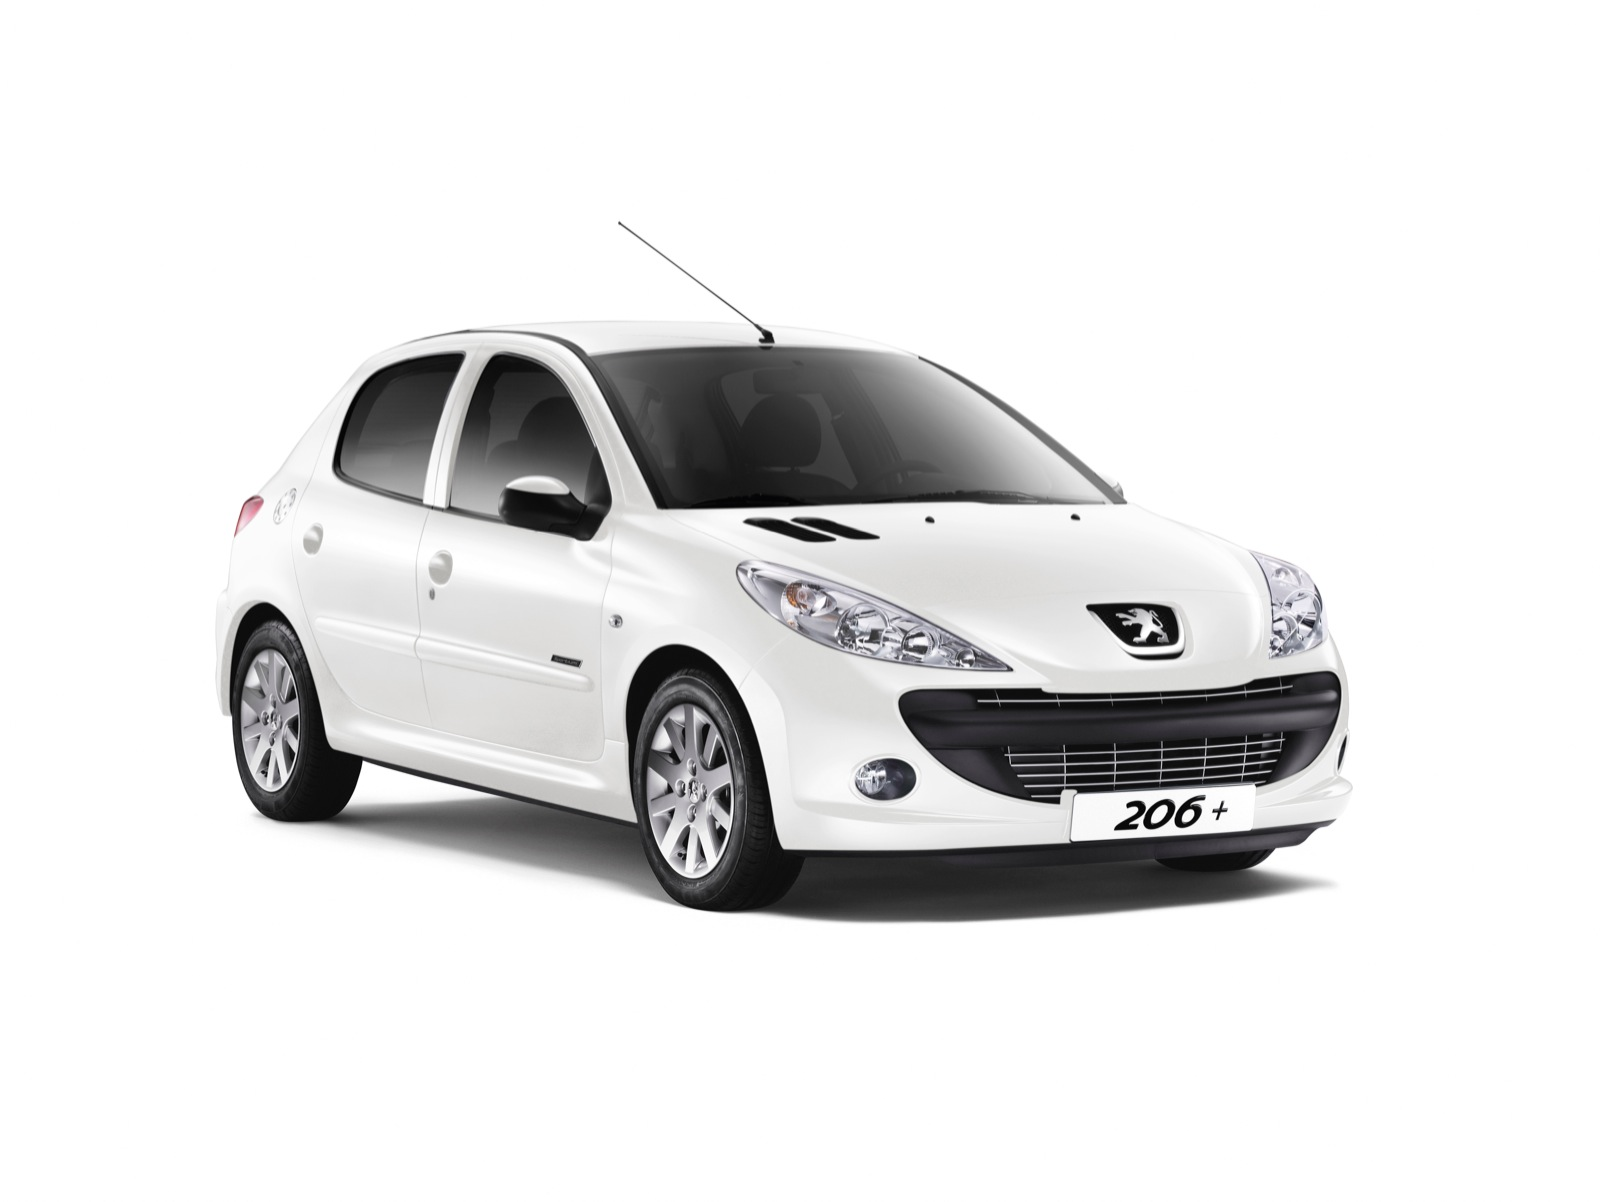 2015 peugeot 207 5 doors with Peugeot 206 5 Doors 2009 on T718 Peugeot 208 furthermore Corsa Active 1 2 16v 2006 5 Doors Silver Full Service History Mot03 02 2016 A C Alloy Wheels London 369114 2 as well Peugeot 307 in addition Peugeot 206 5 Doors 2009 also Car124895.